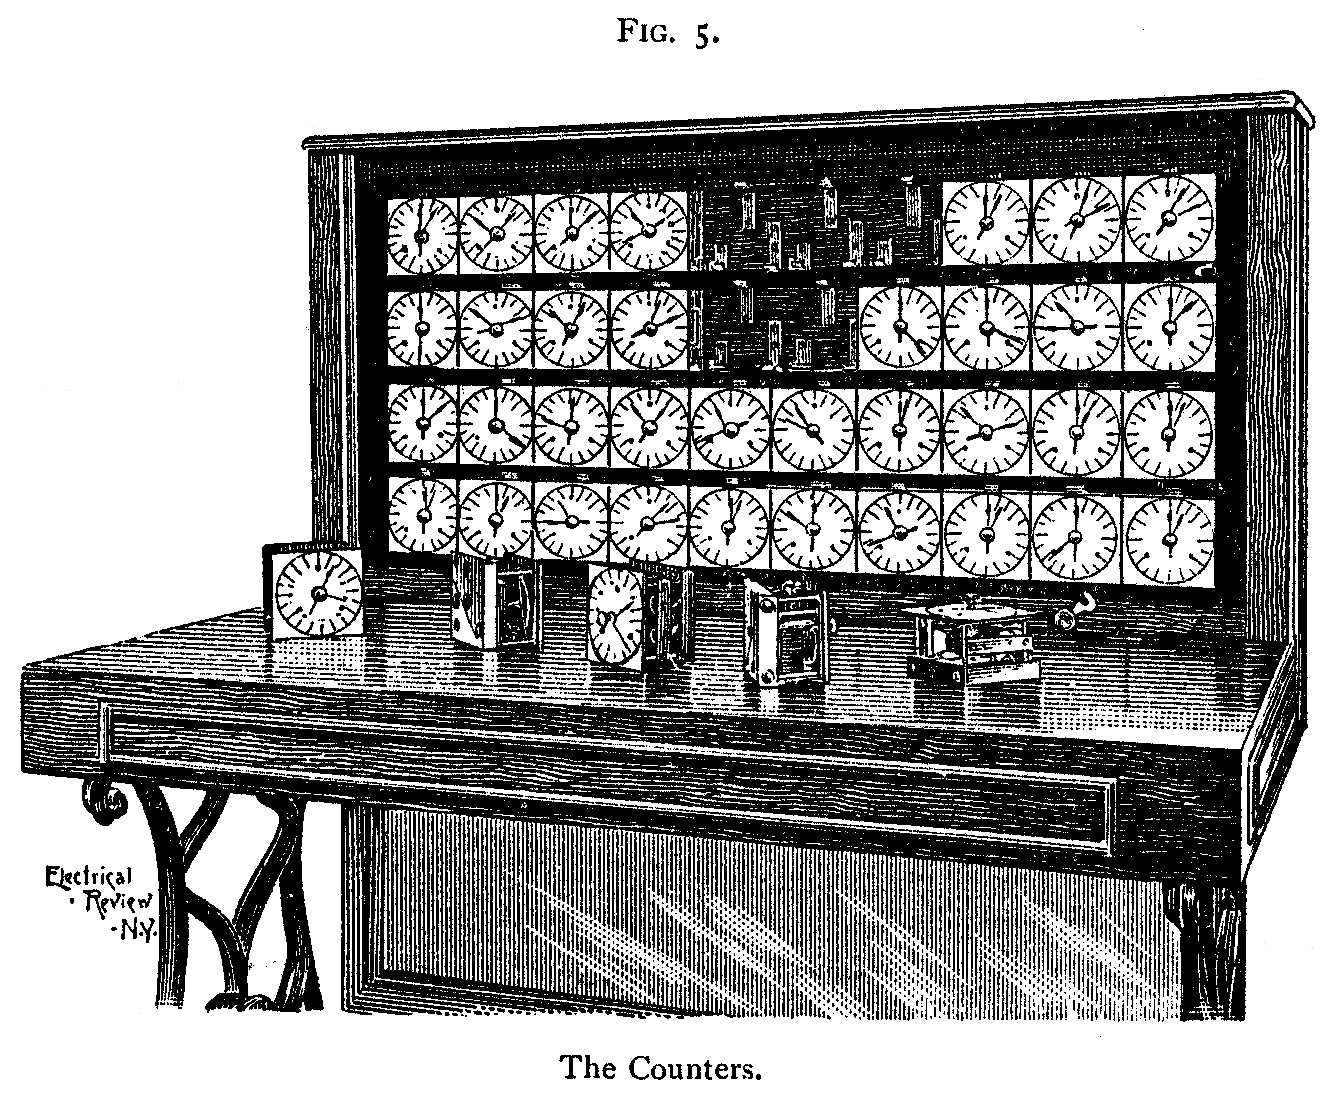 The counters